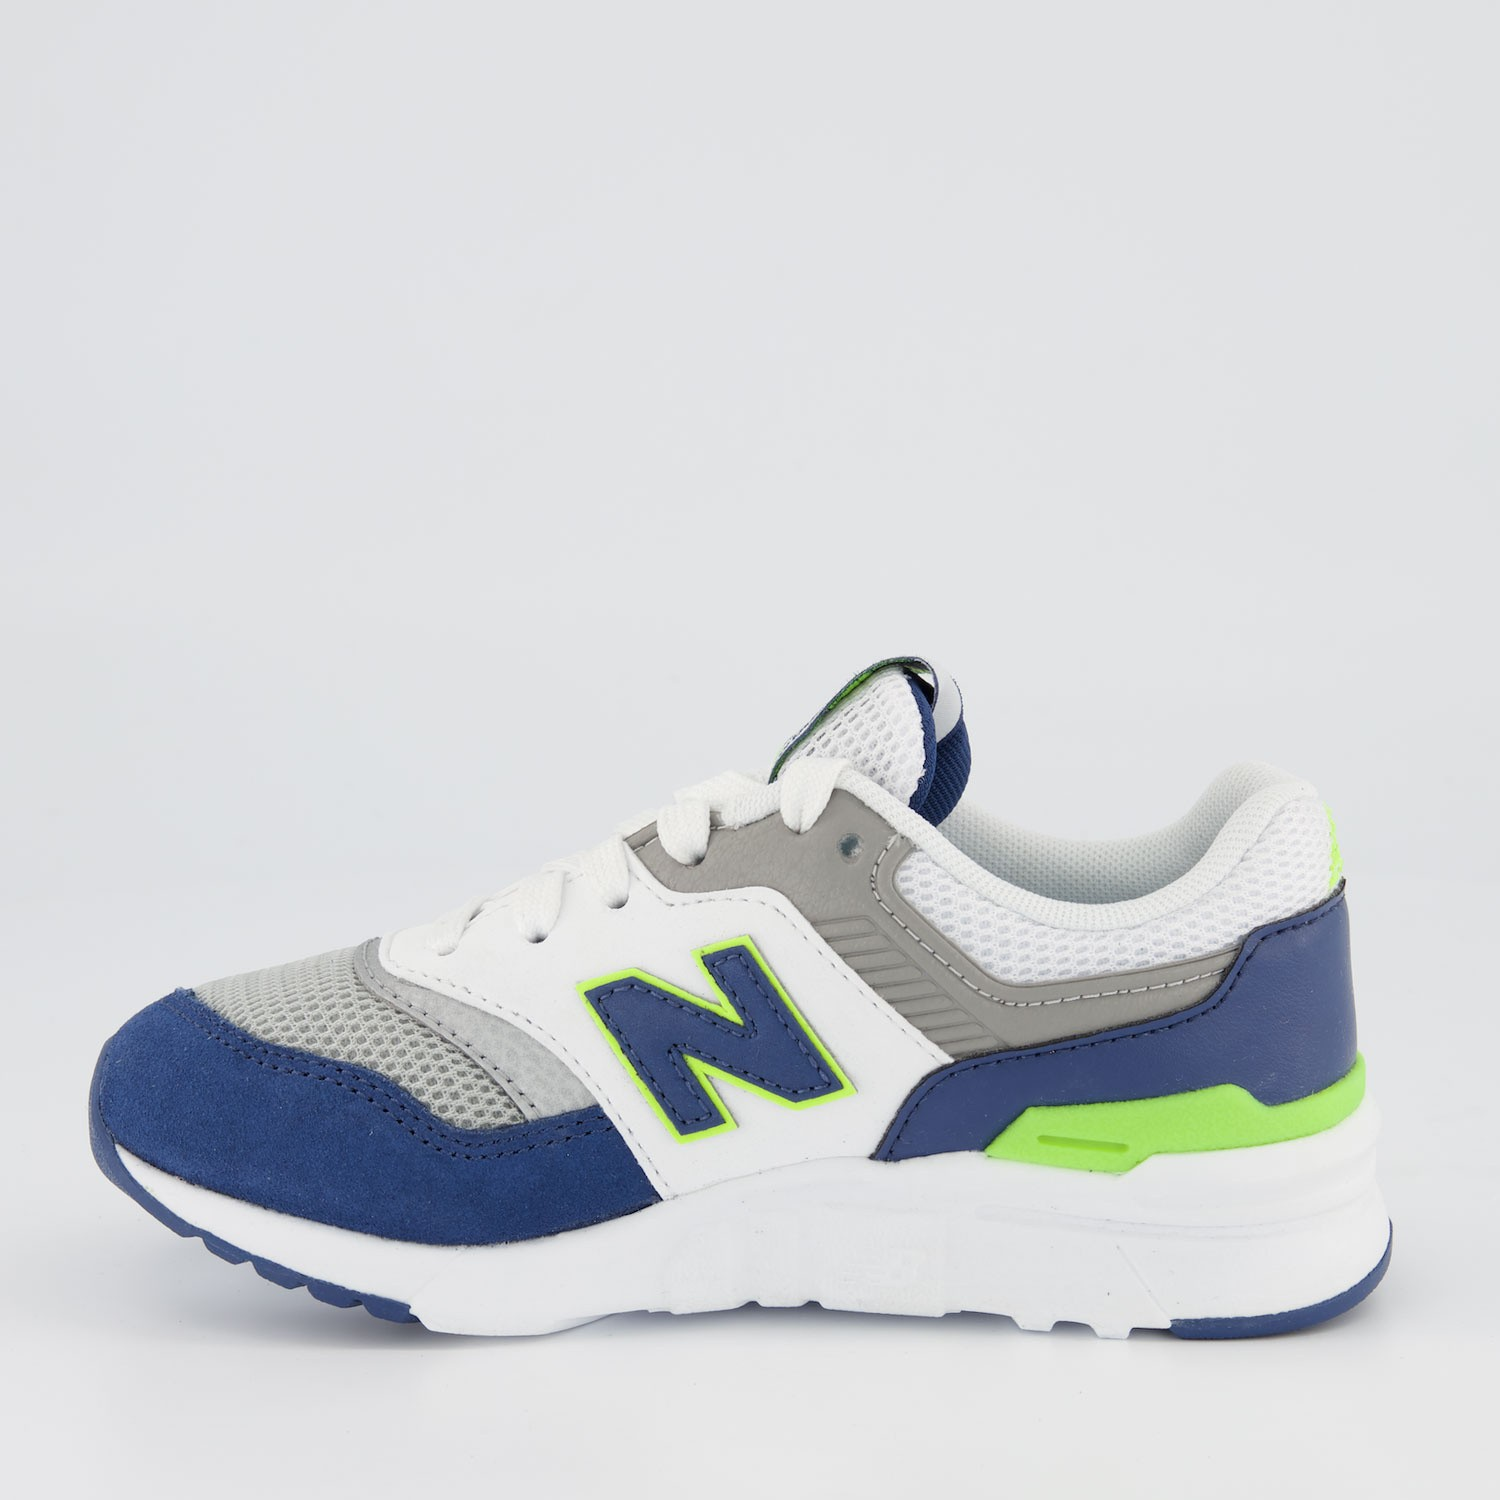 new balance kindersneakers